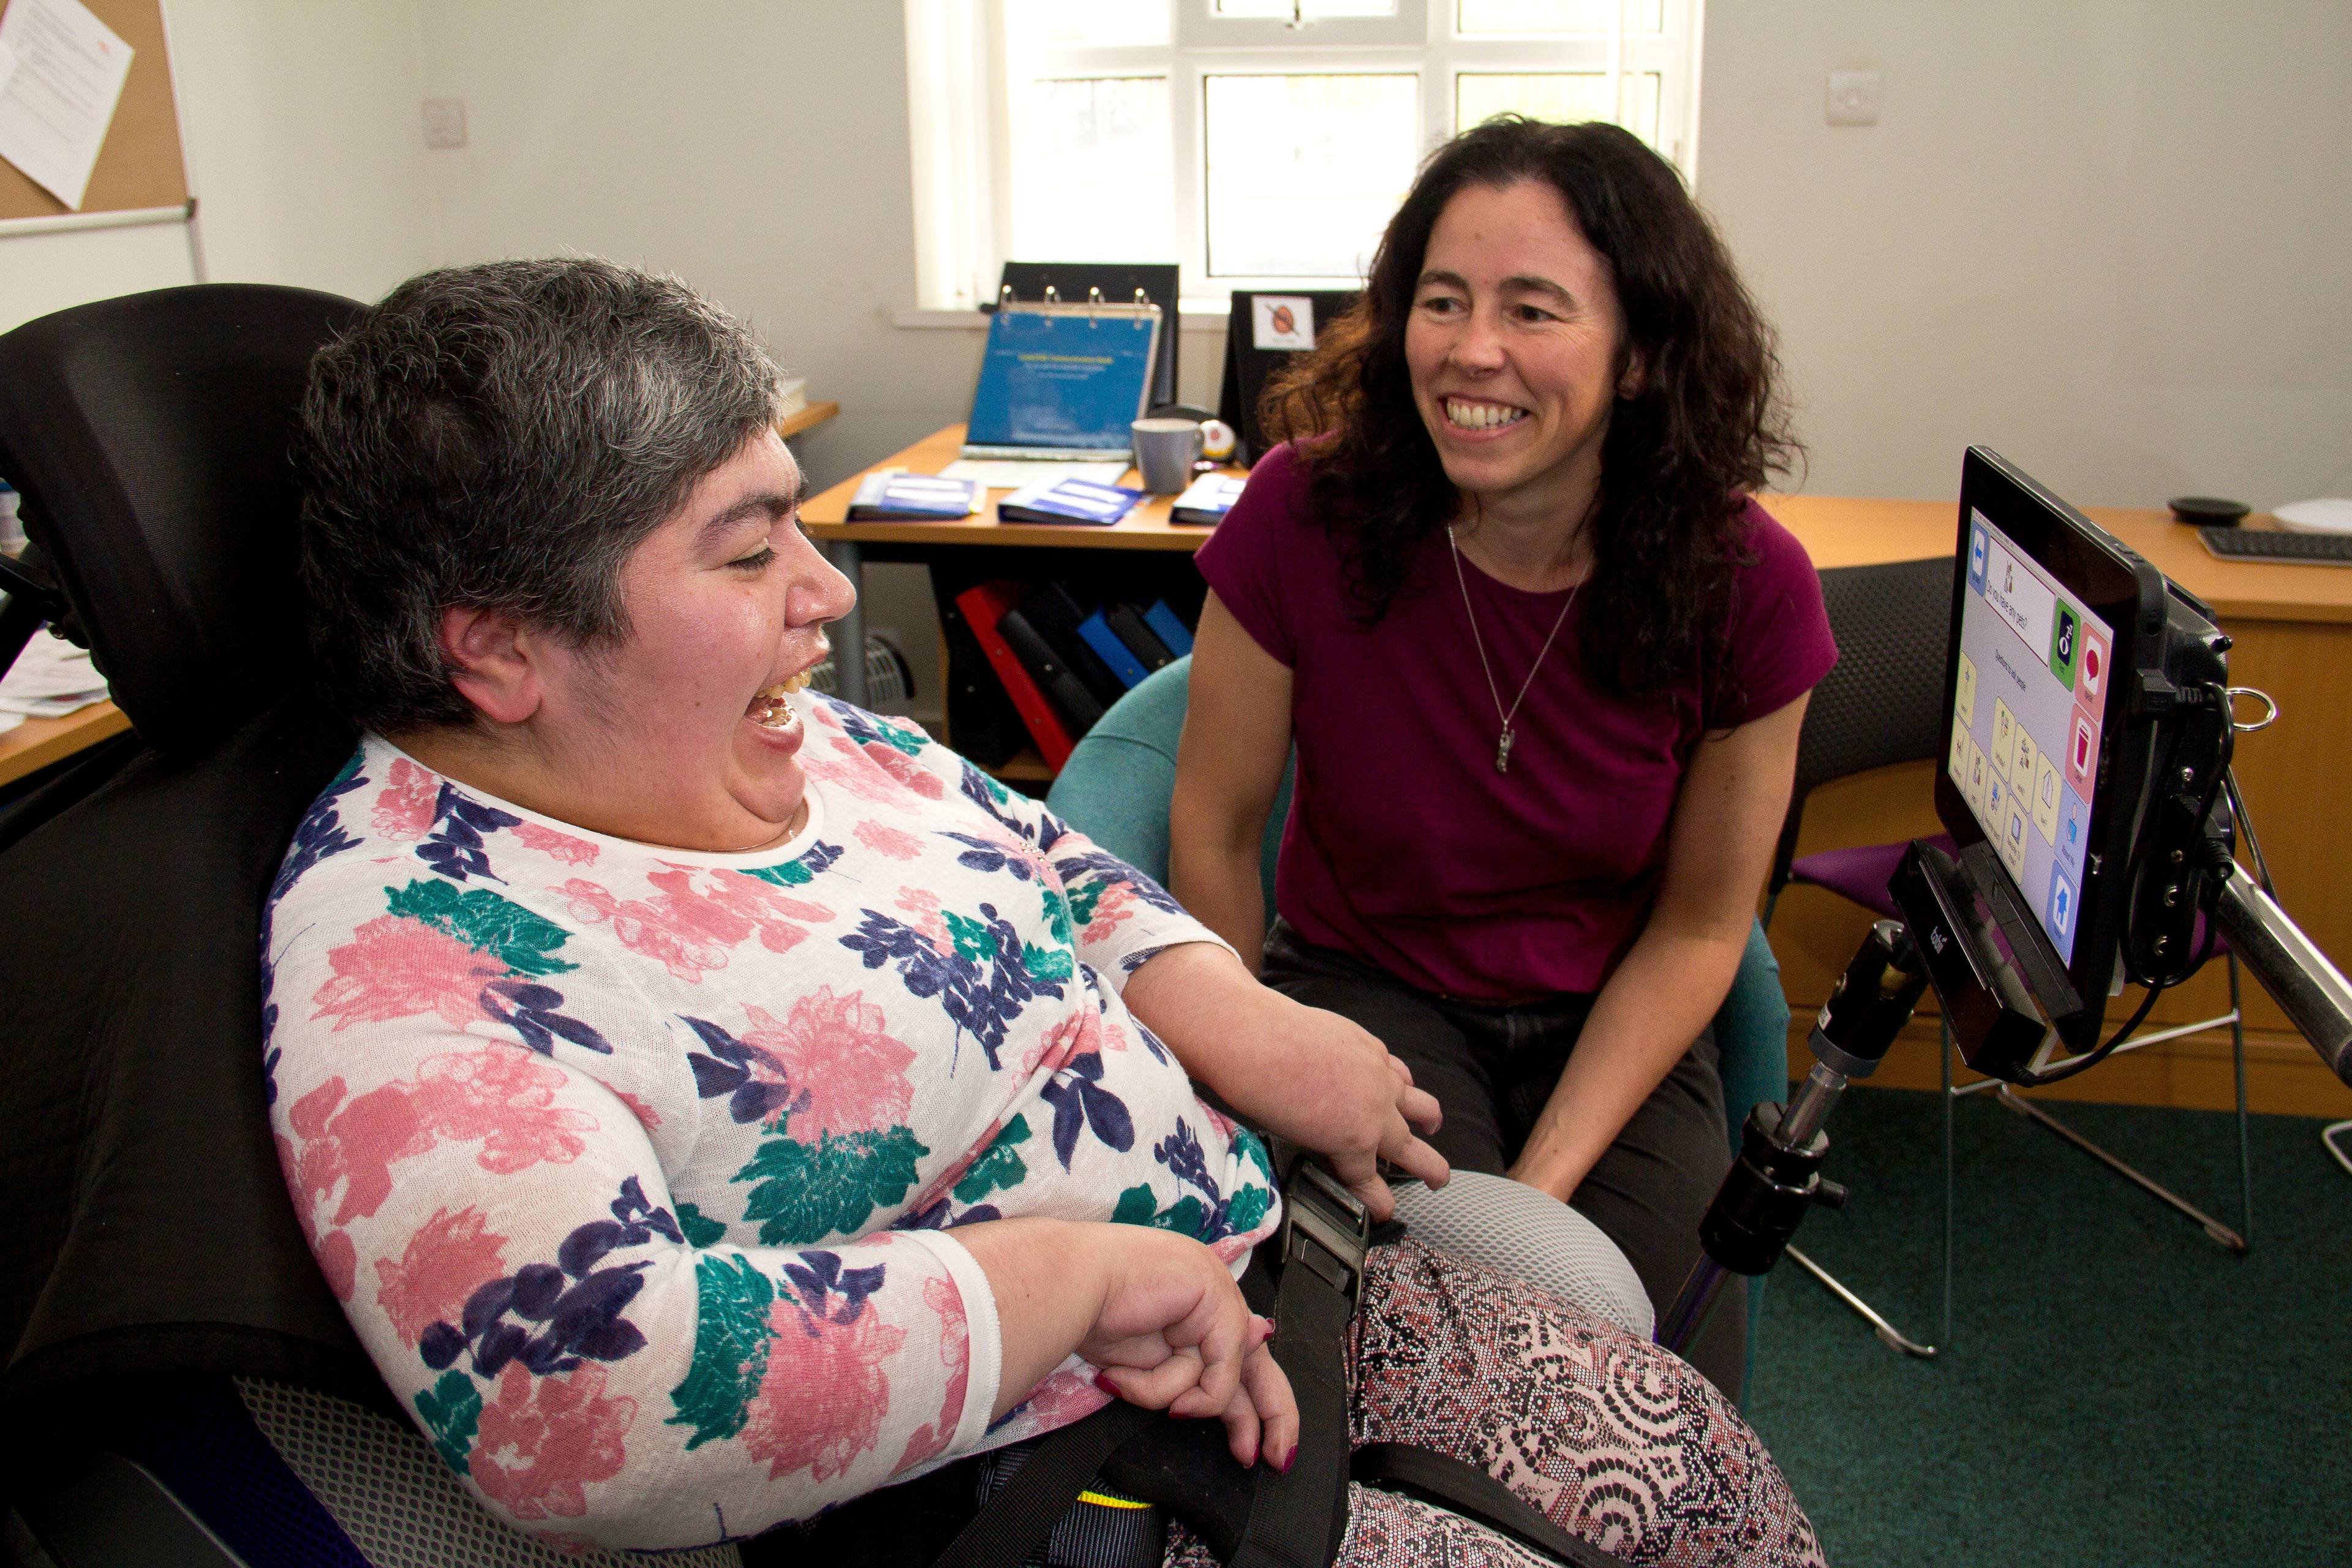 Ace centre employee and client laughing